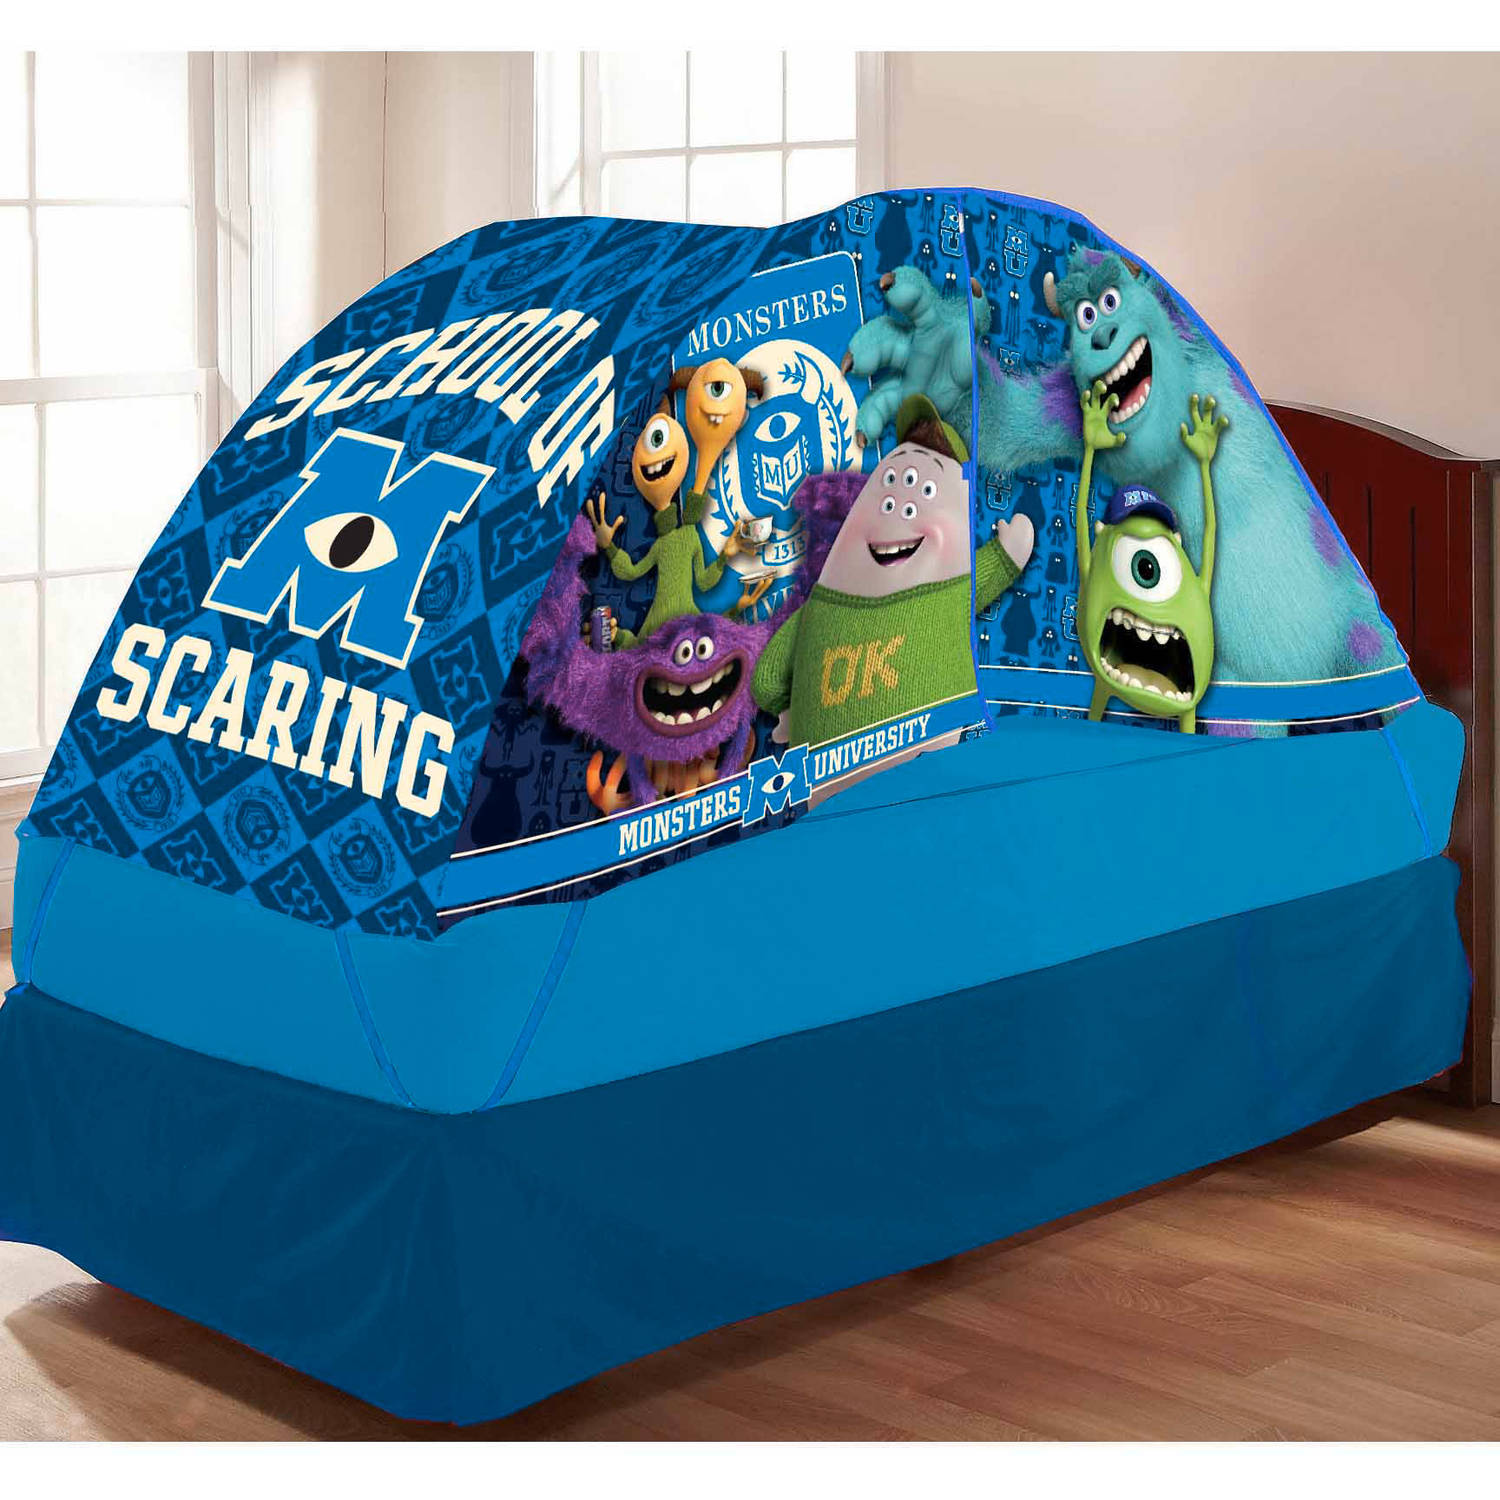 Monster's University Bed Tent with Pushlight